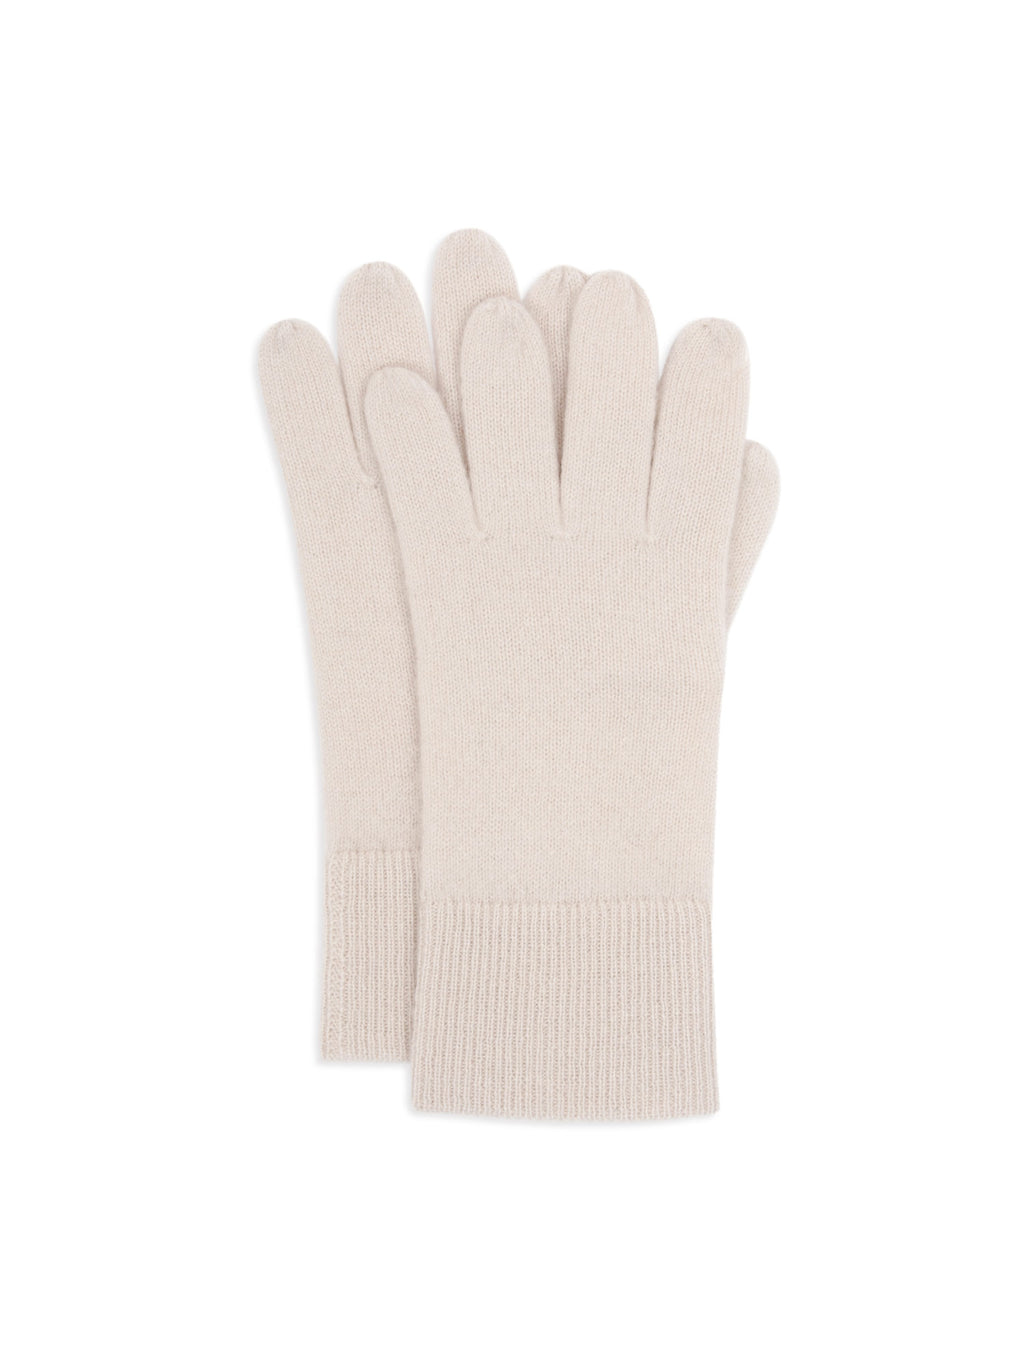 cashmere mittens snow in 100% cashmere by Kashmina